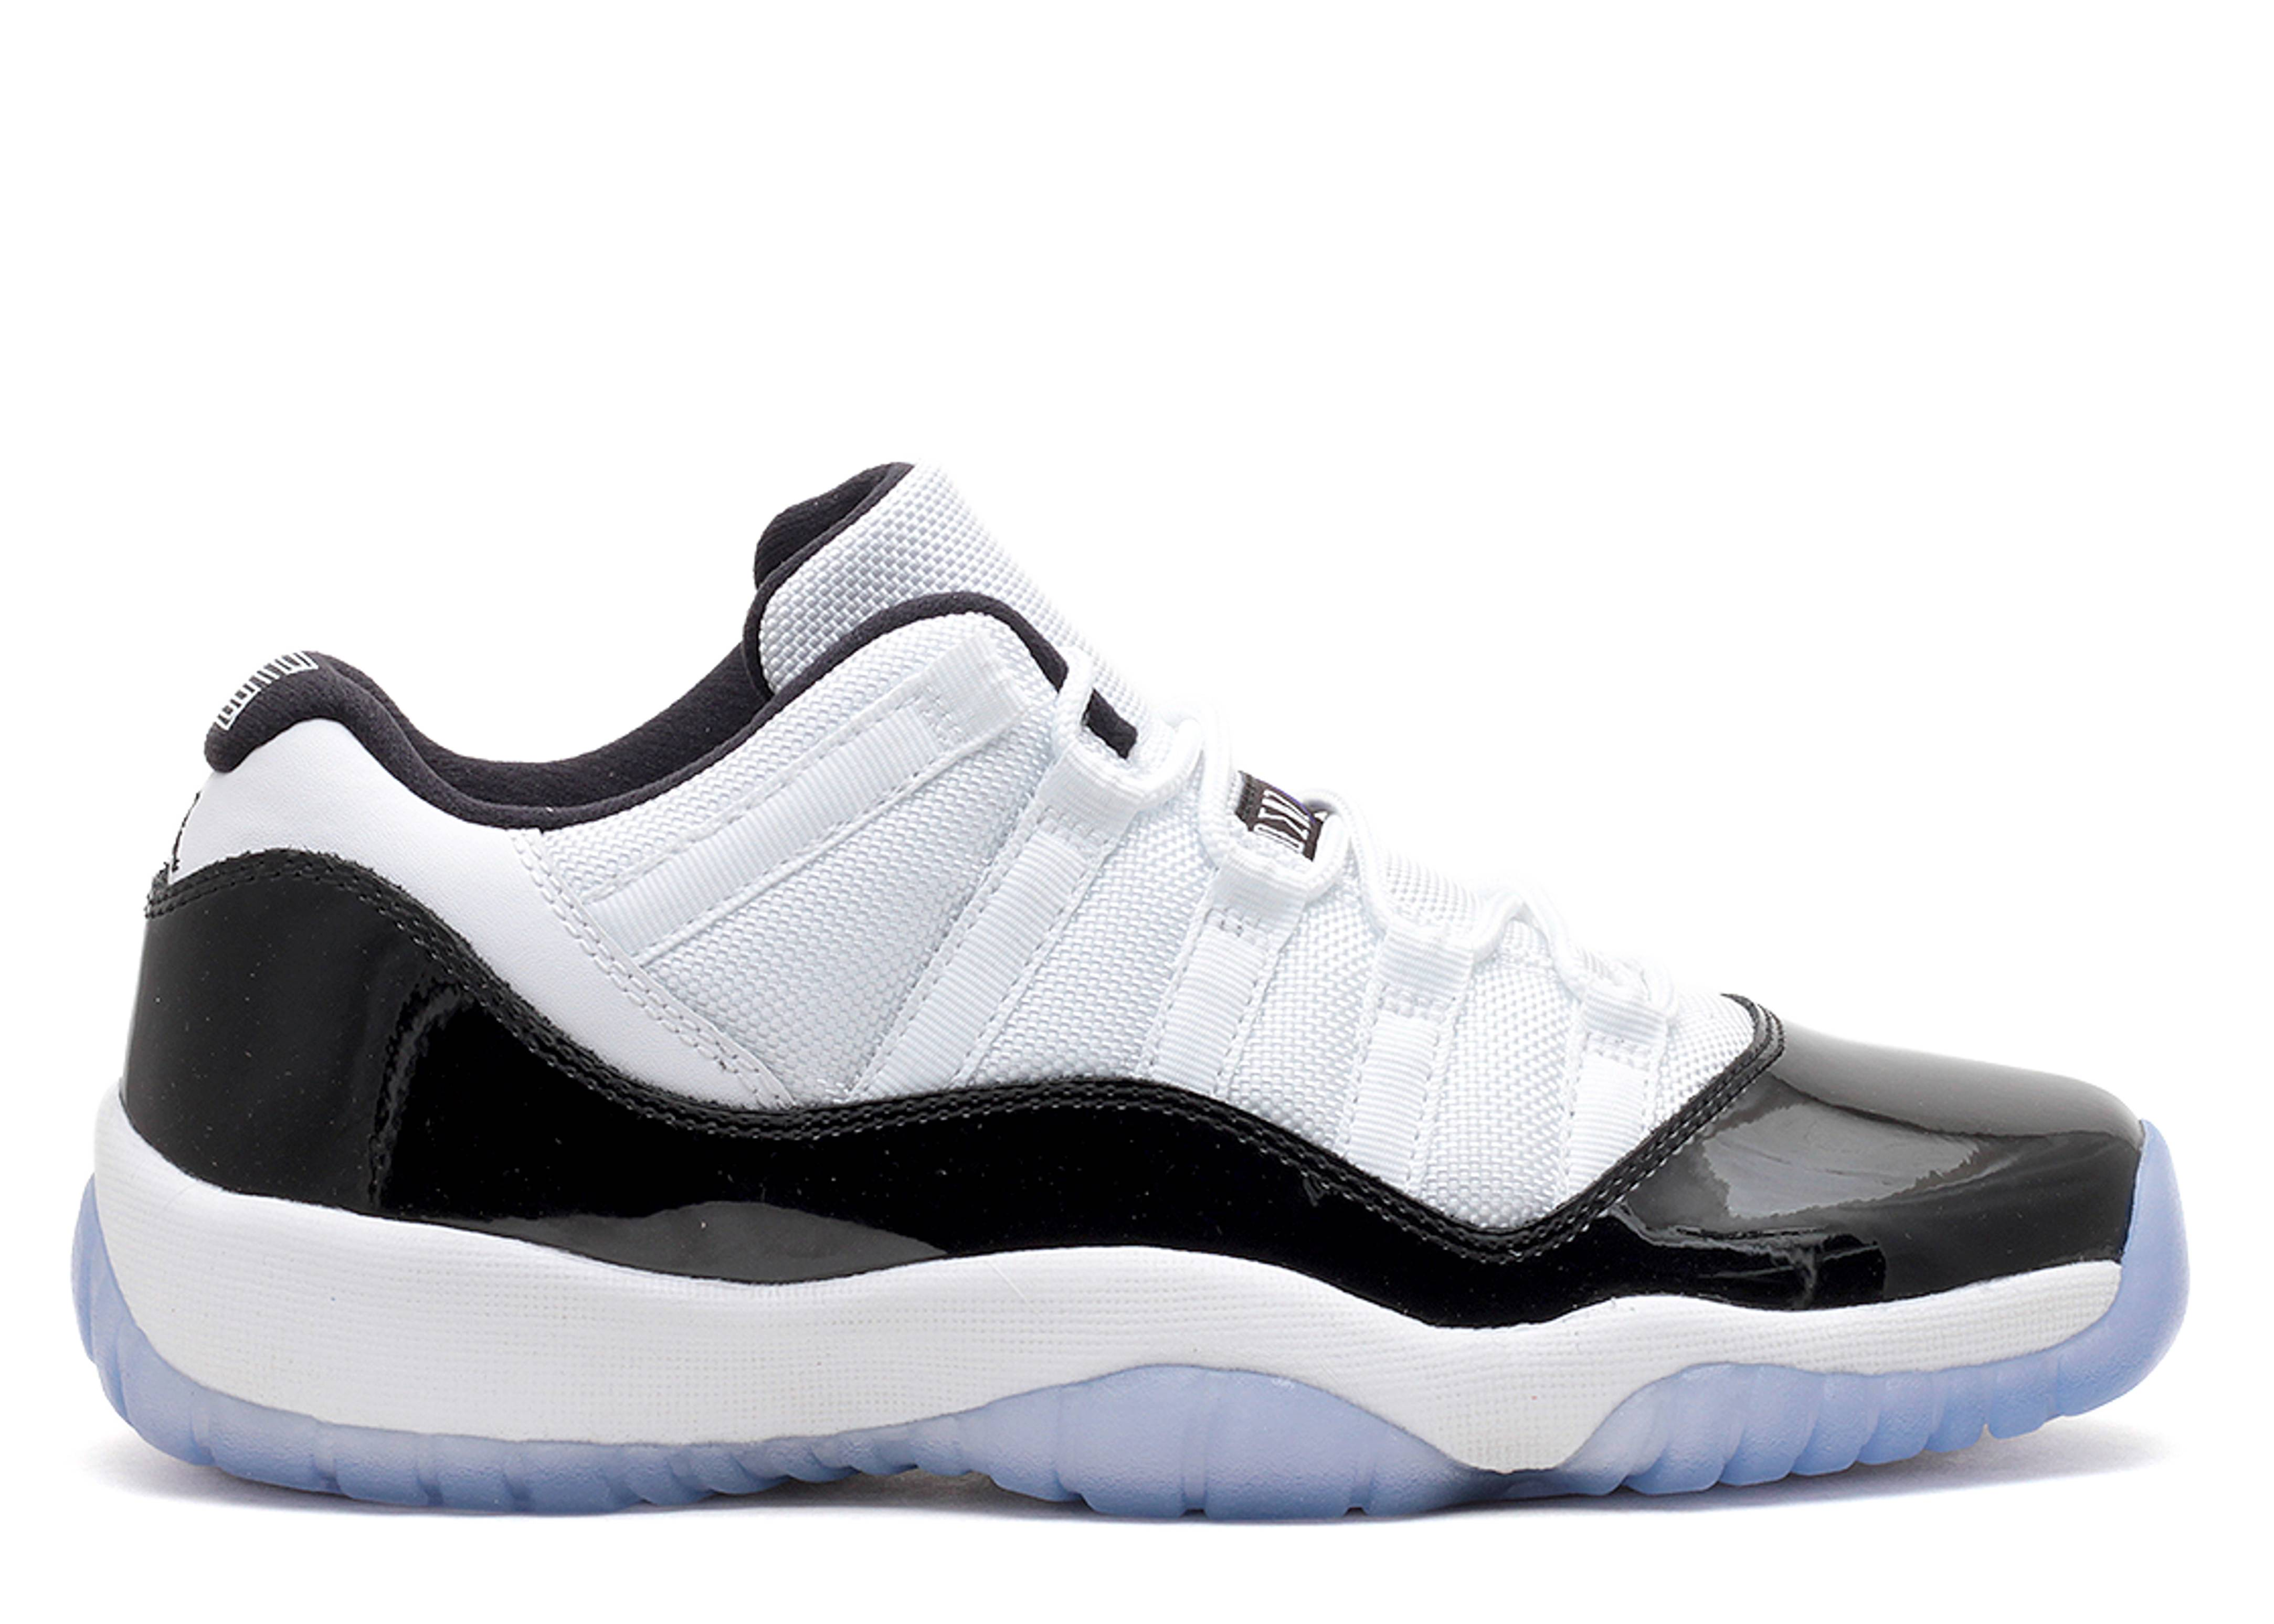 Authentic Air Jordan XI 11 Low White and Black GS